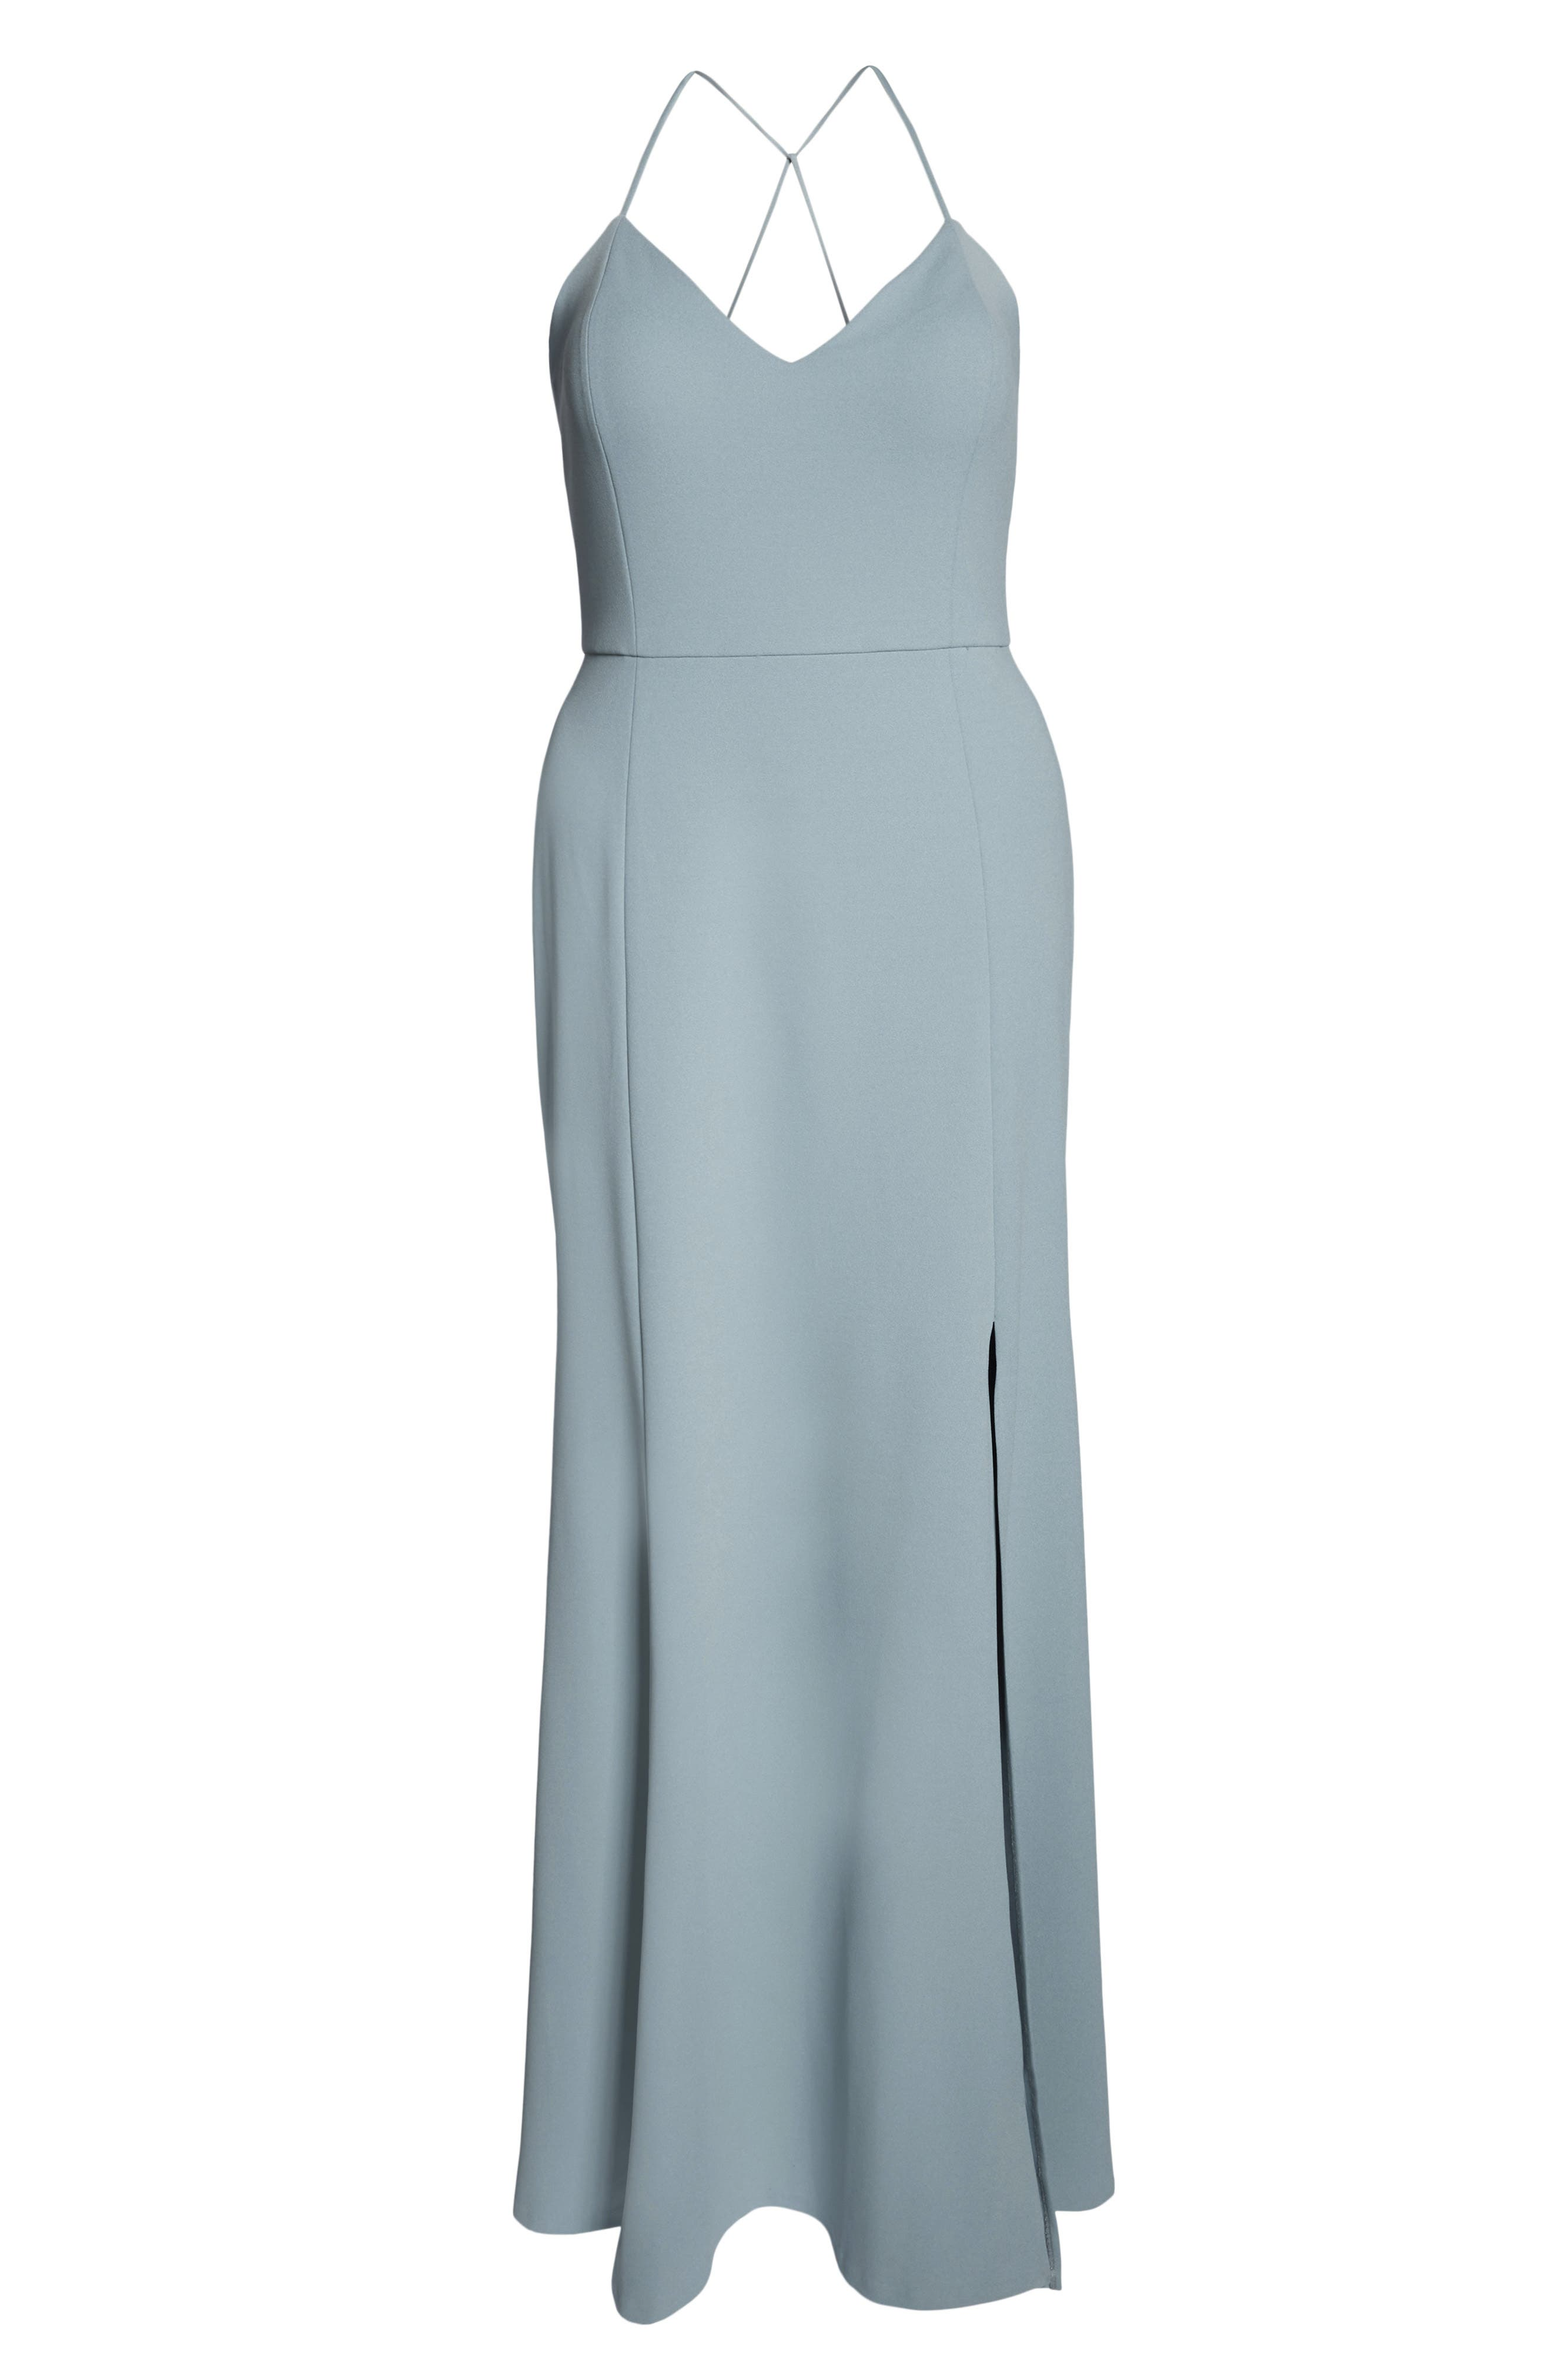 Reese Crepe Knit Gown,                             Alternate thumbnail 14, color,                             MAYAN BLUE